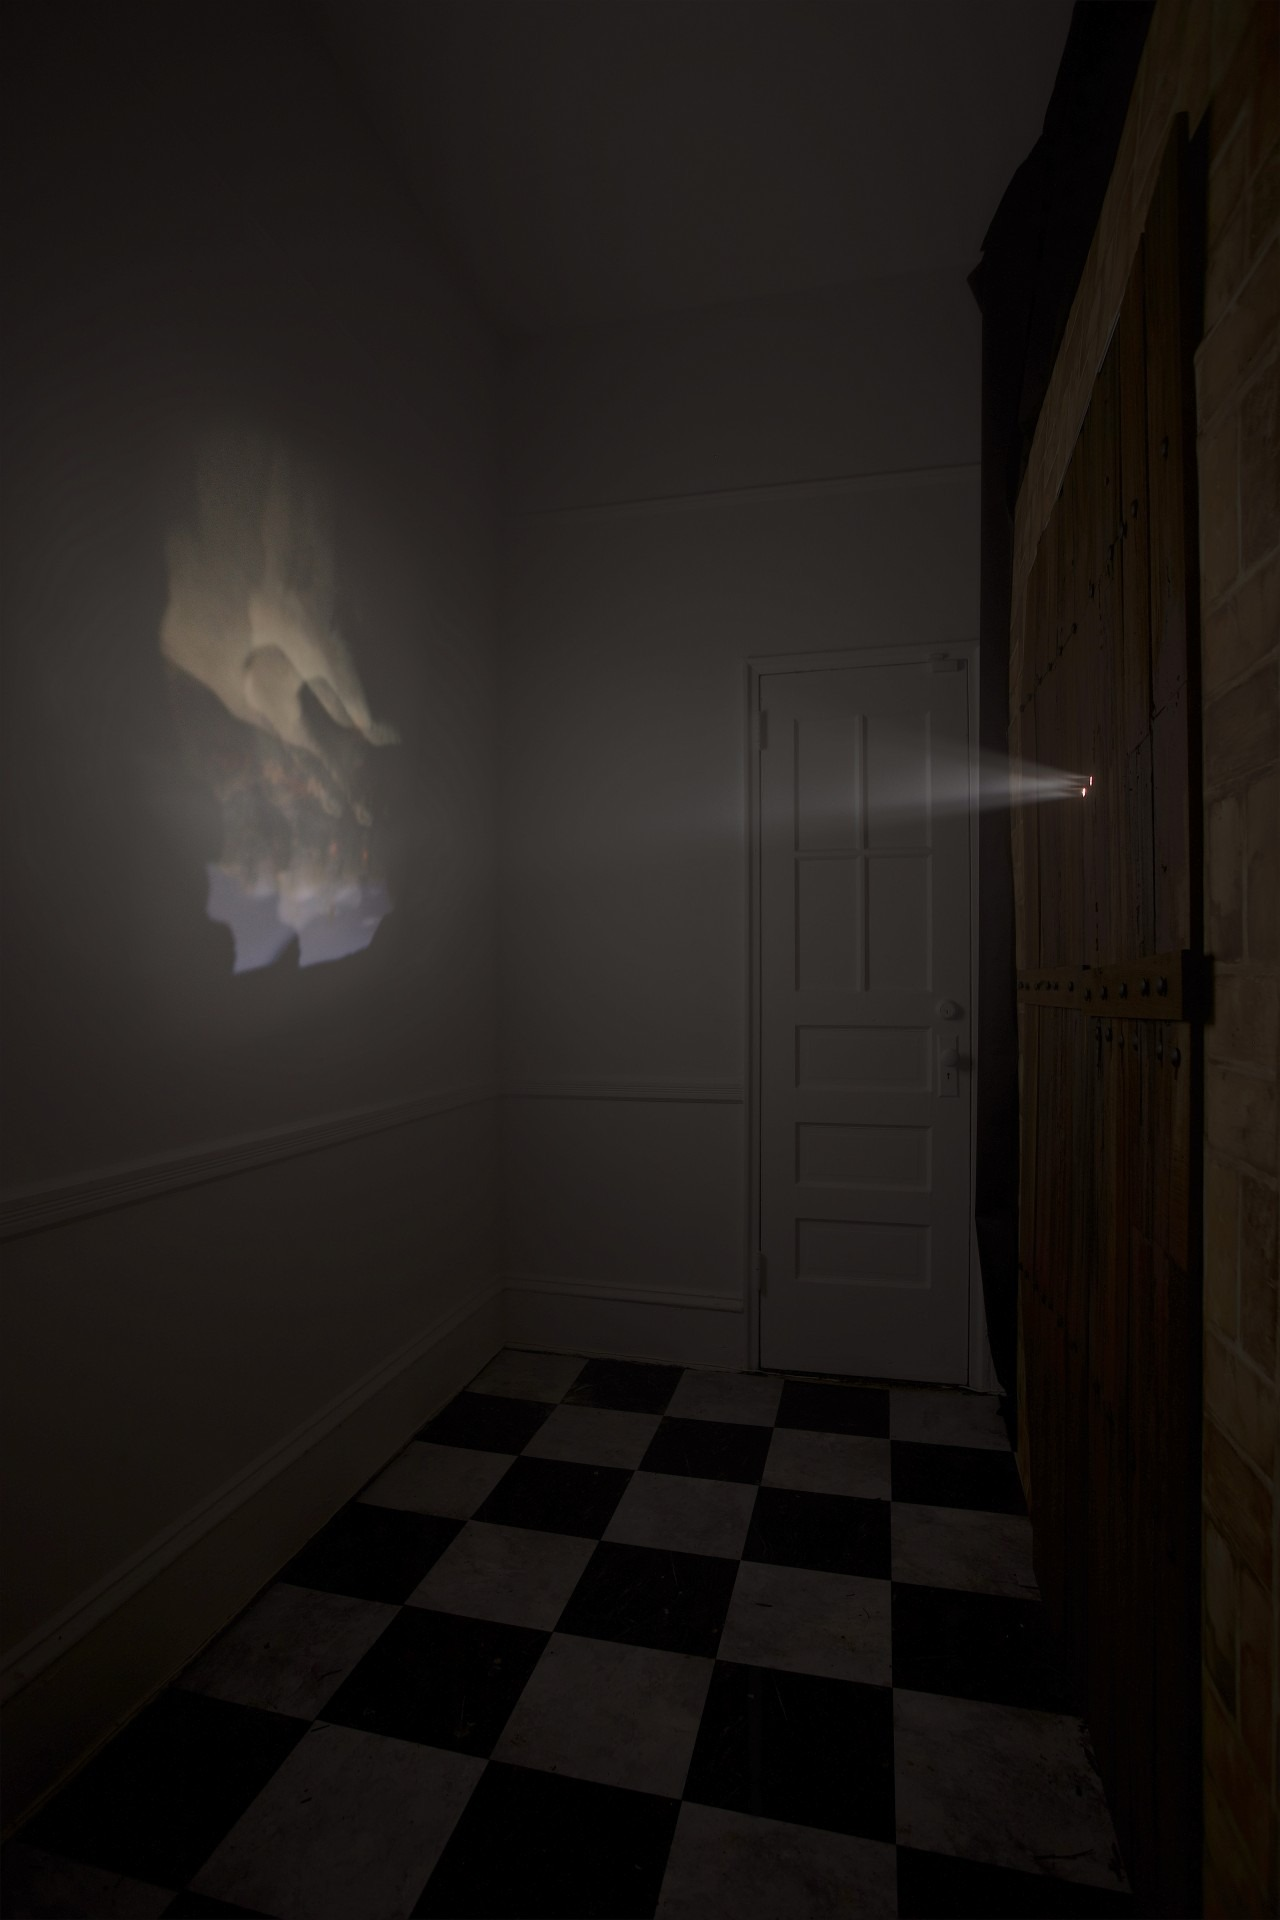 A photo illustration: in a dark room, a projection comes from two small holes in a double door and plays on the wall